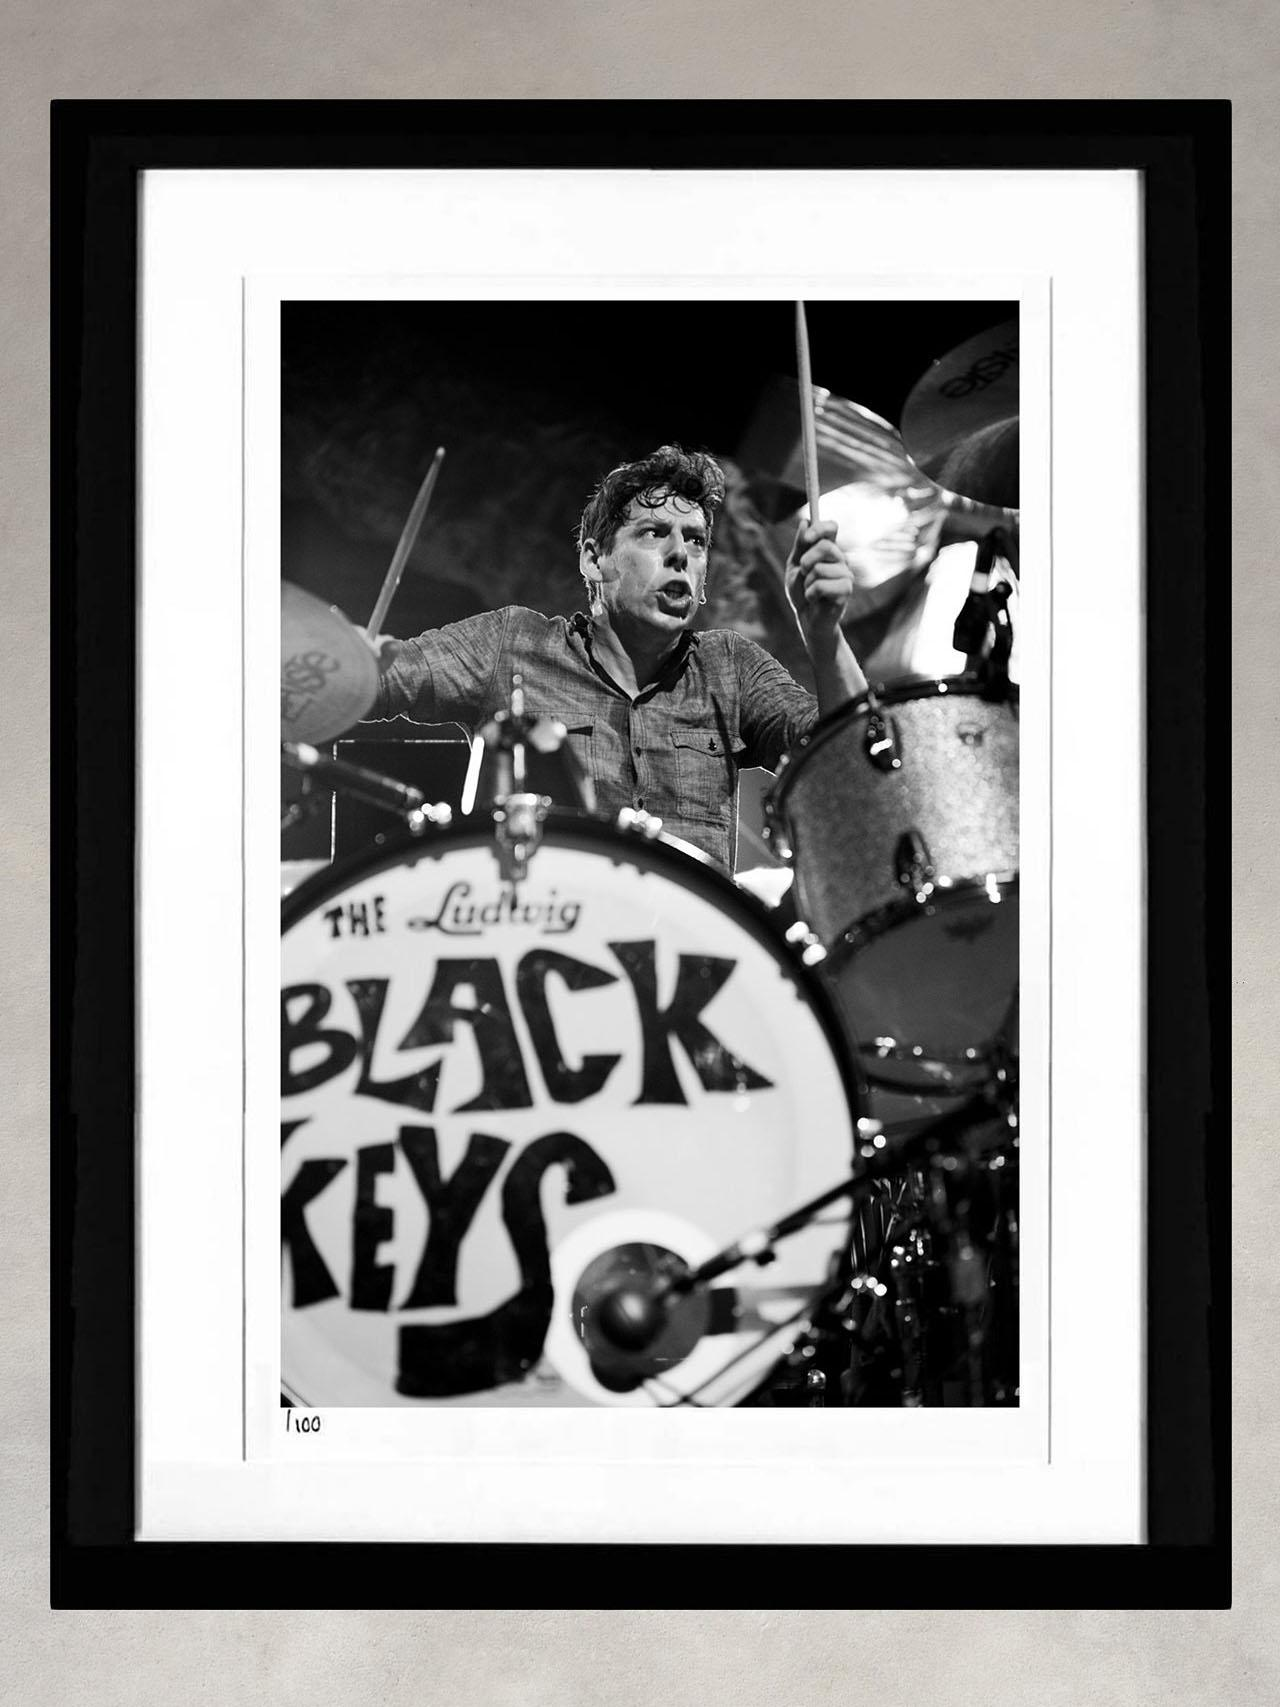 Patrick Carney by Scott Simock